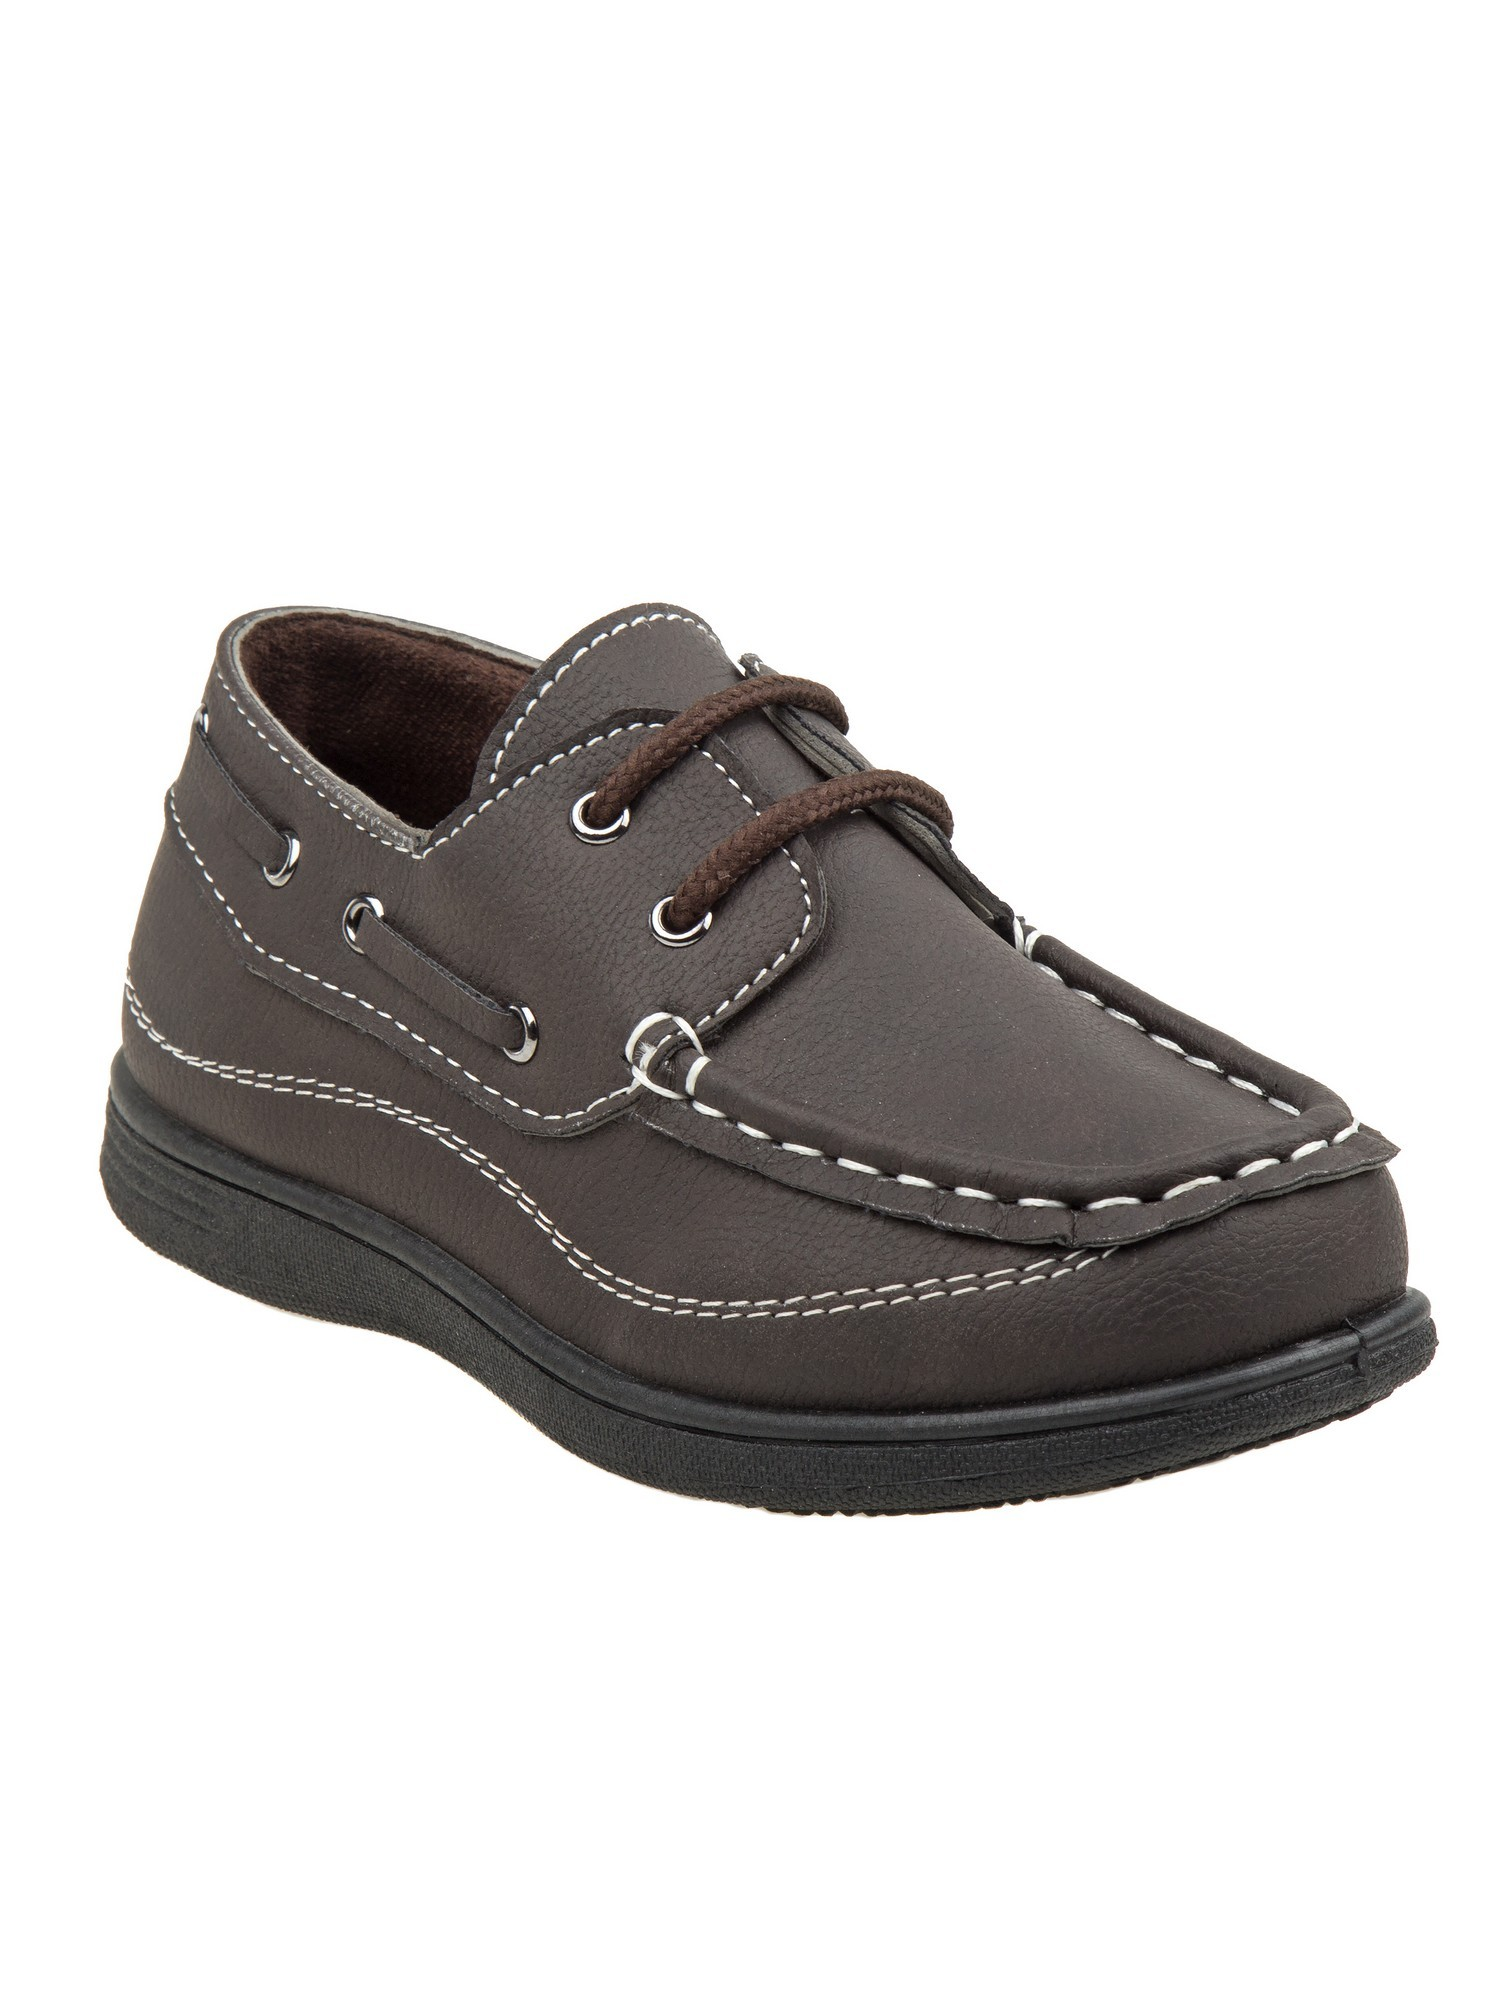 Lace up Boys Boat Shoes